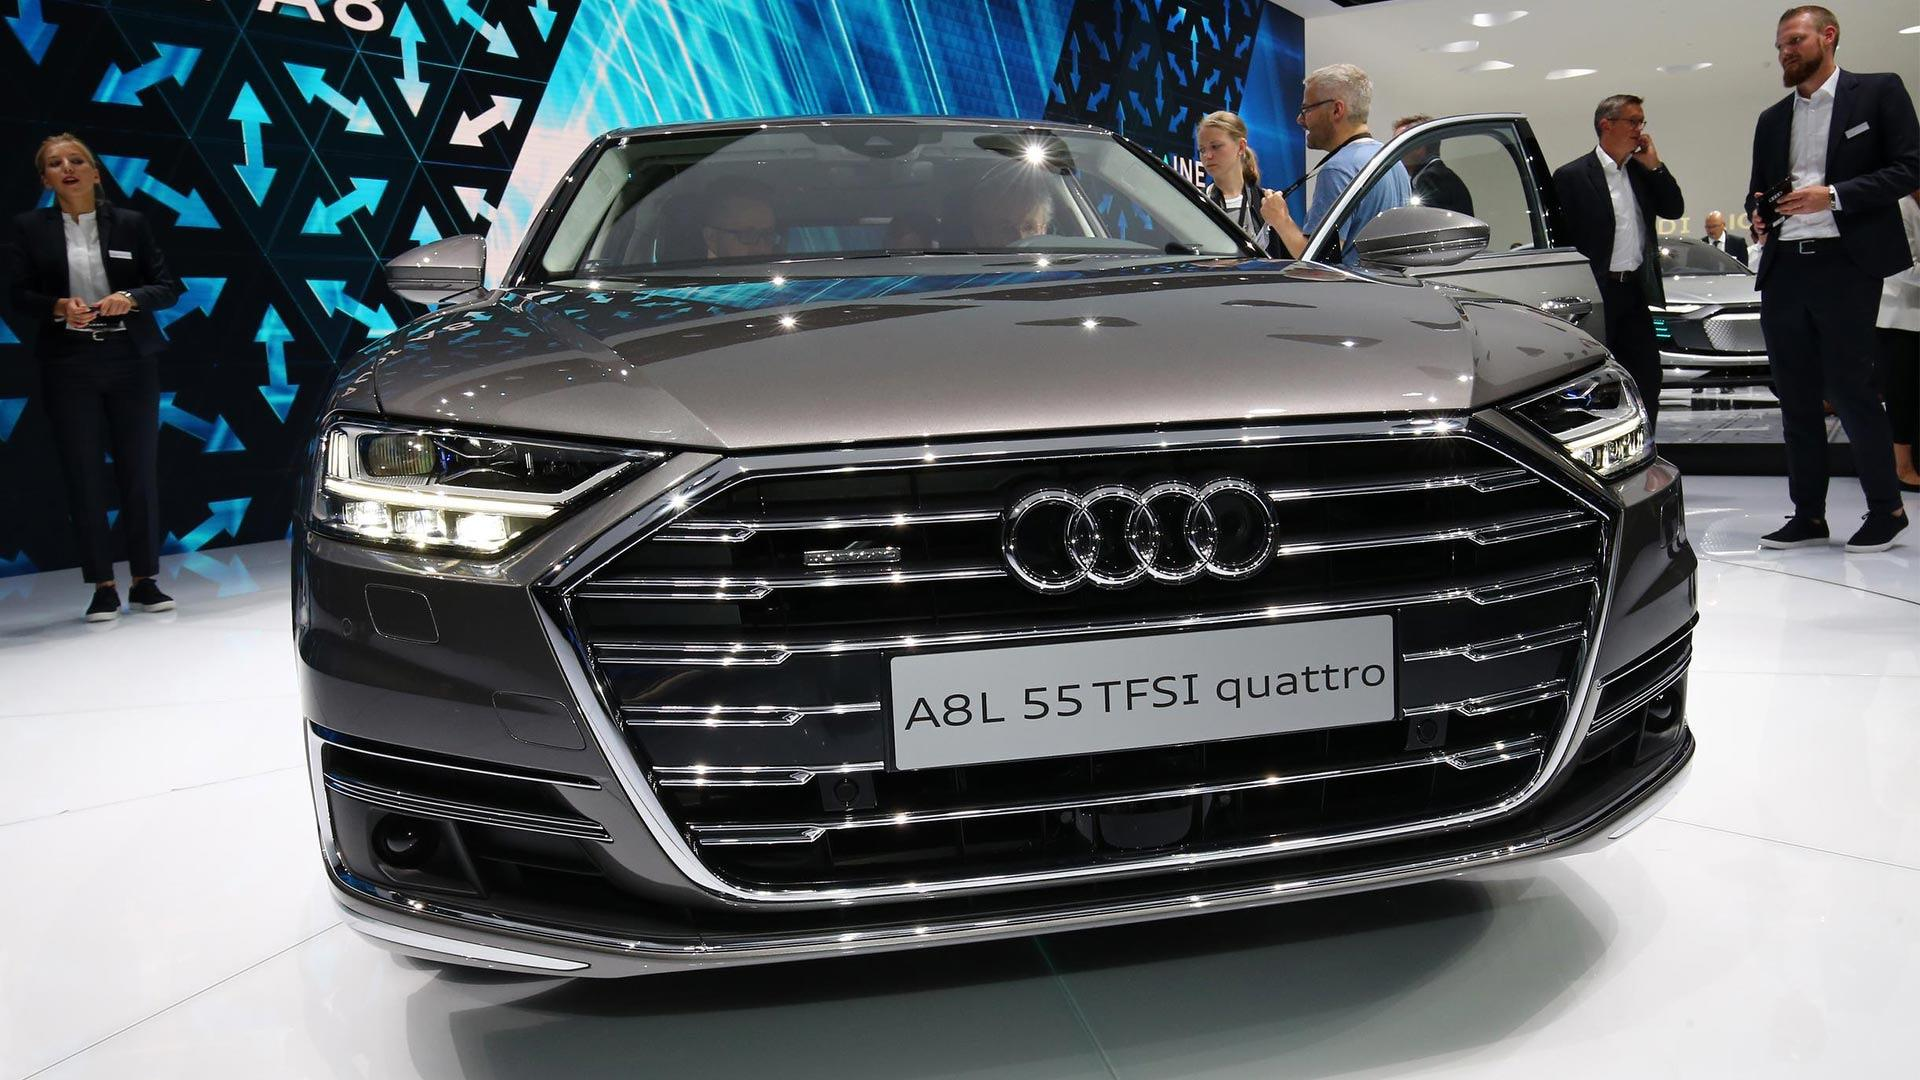 2018 Audi A8 Has Lasers Foot Massagers And A Big Price Tag